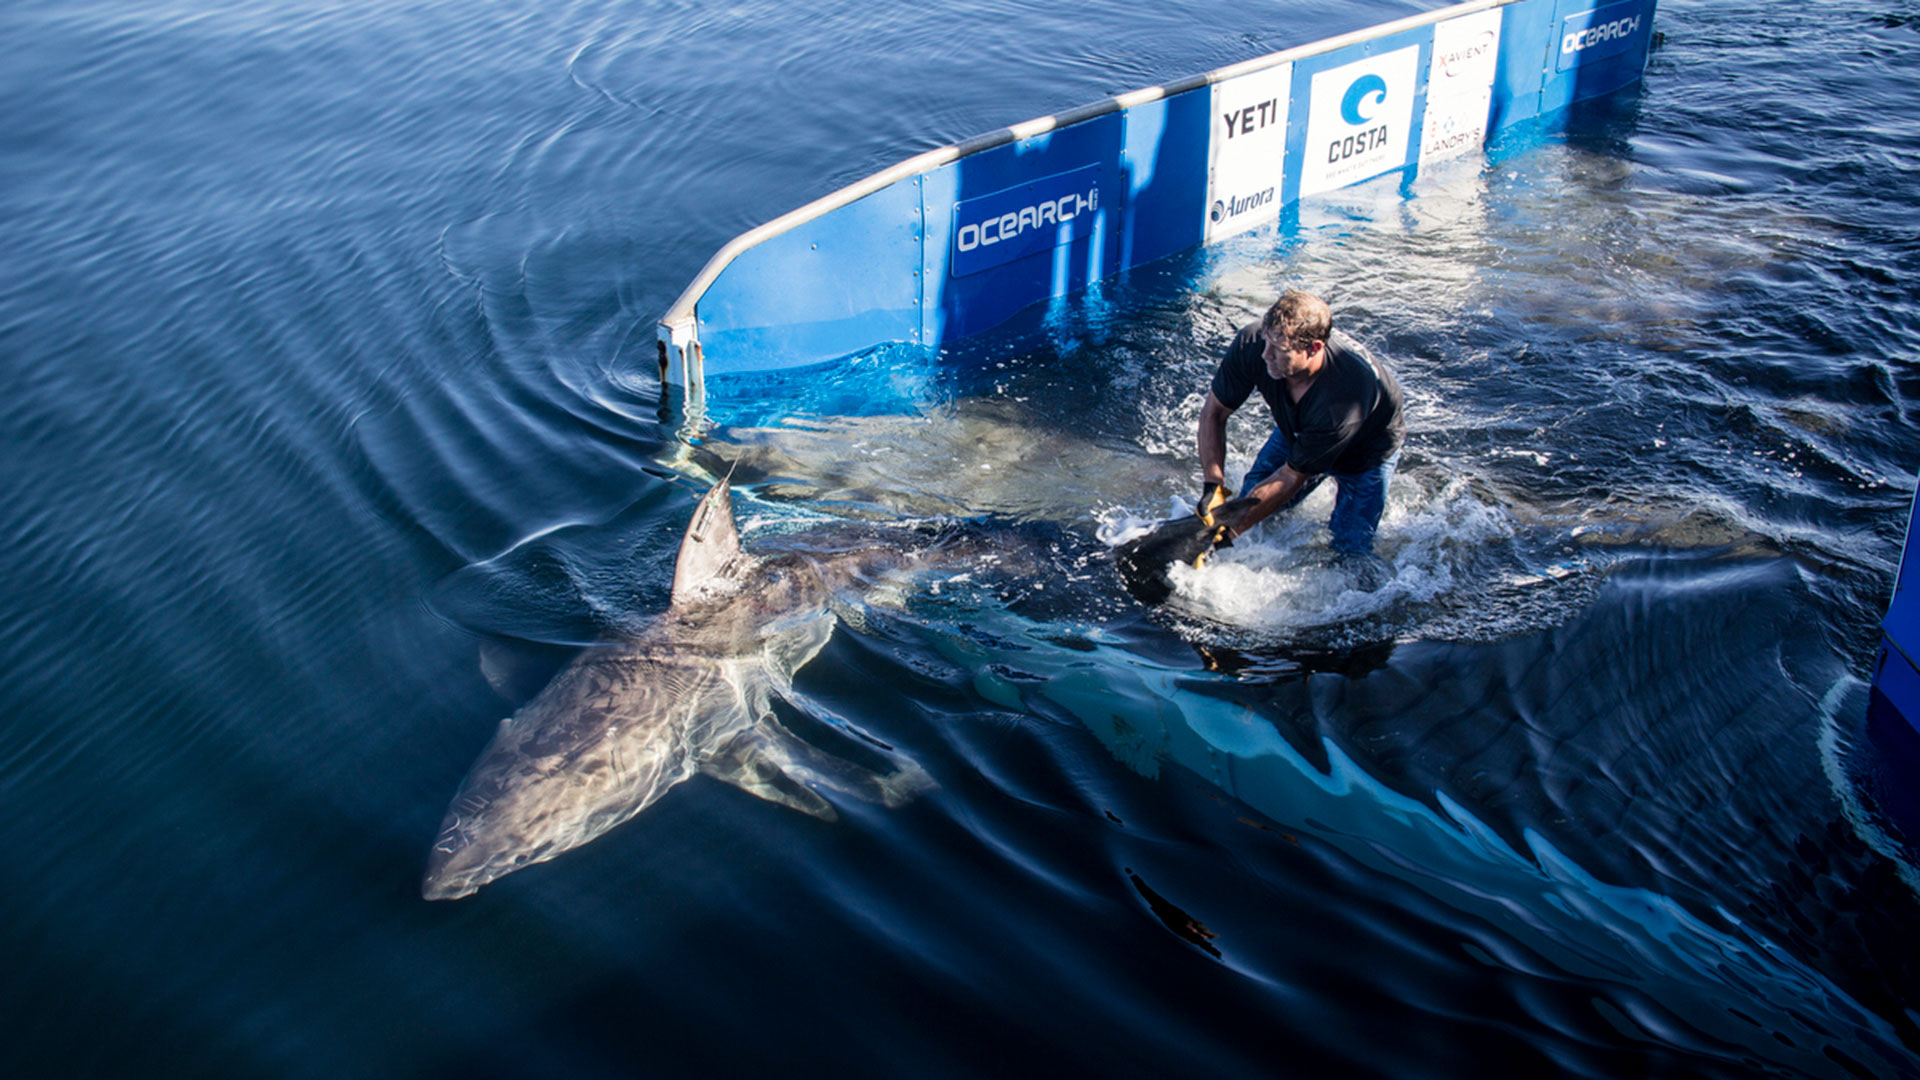 OCEARCH Tracks Large White Shark Miss Costa Off Florida Panhandle